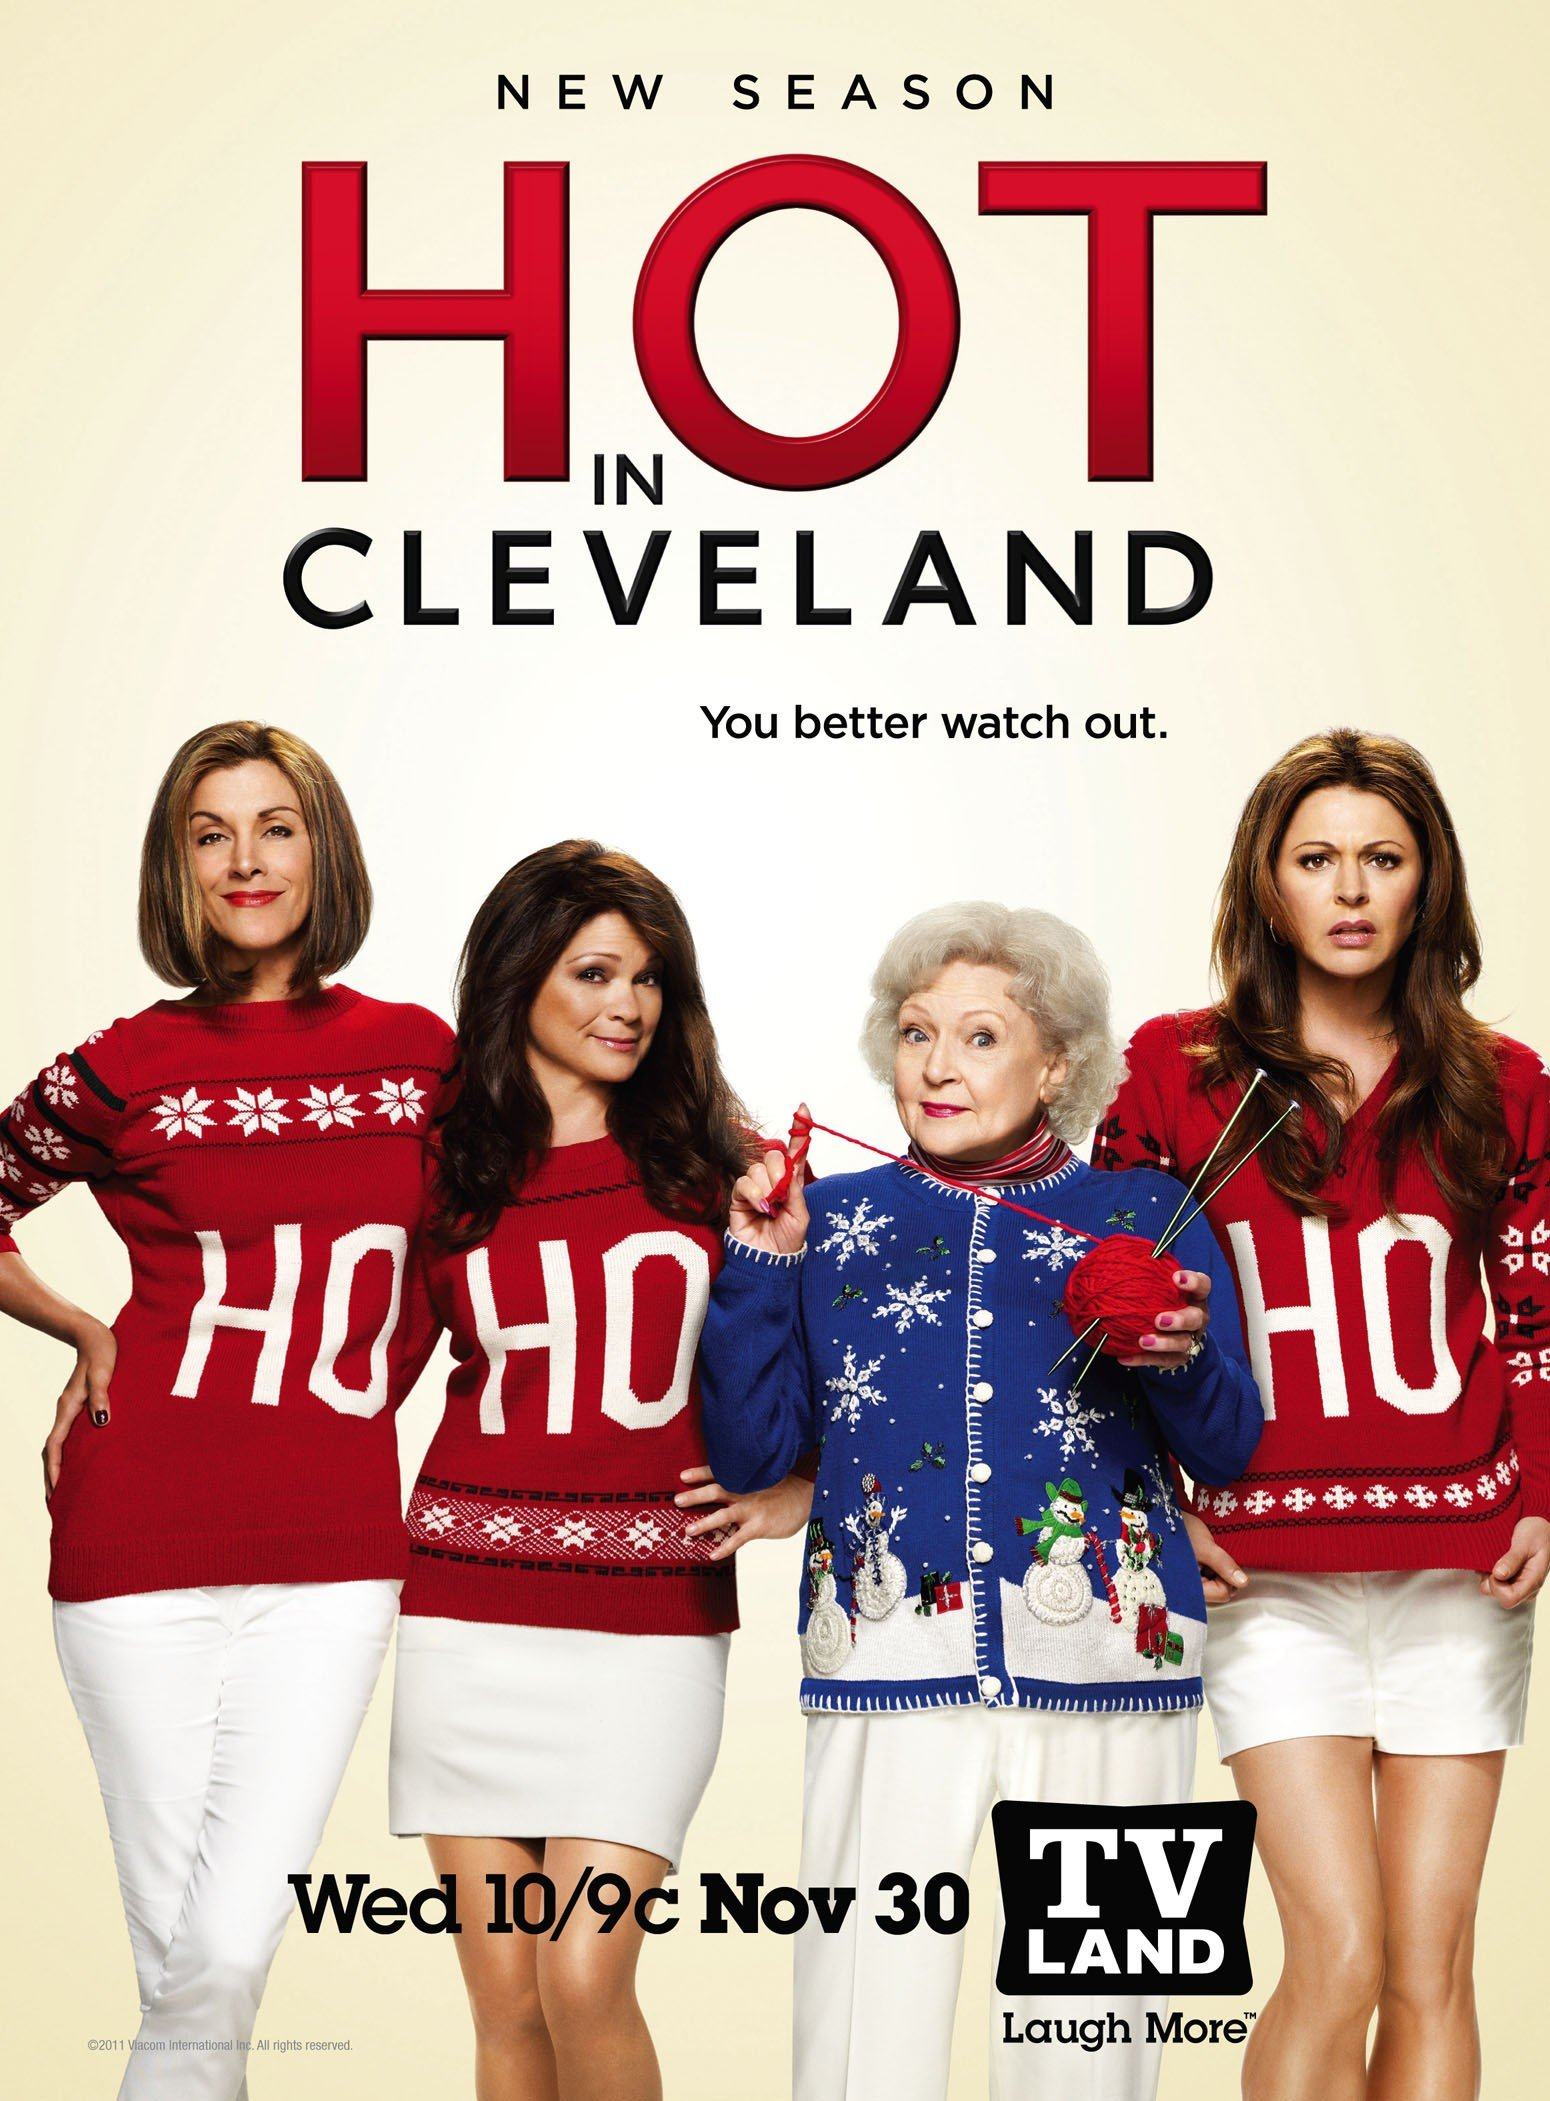 hot_in_cleveland_2010_4406_poster.jpg